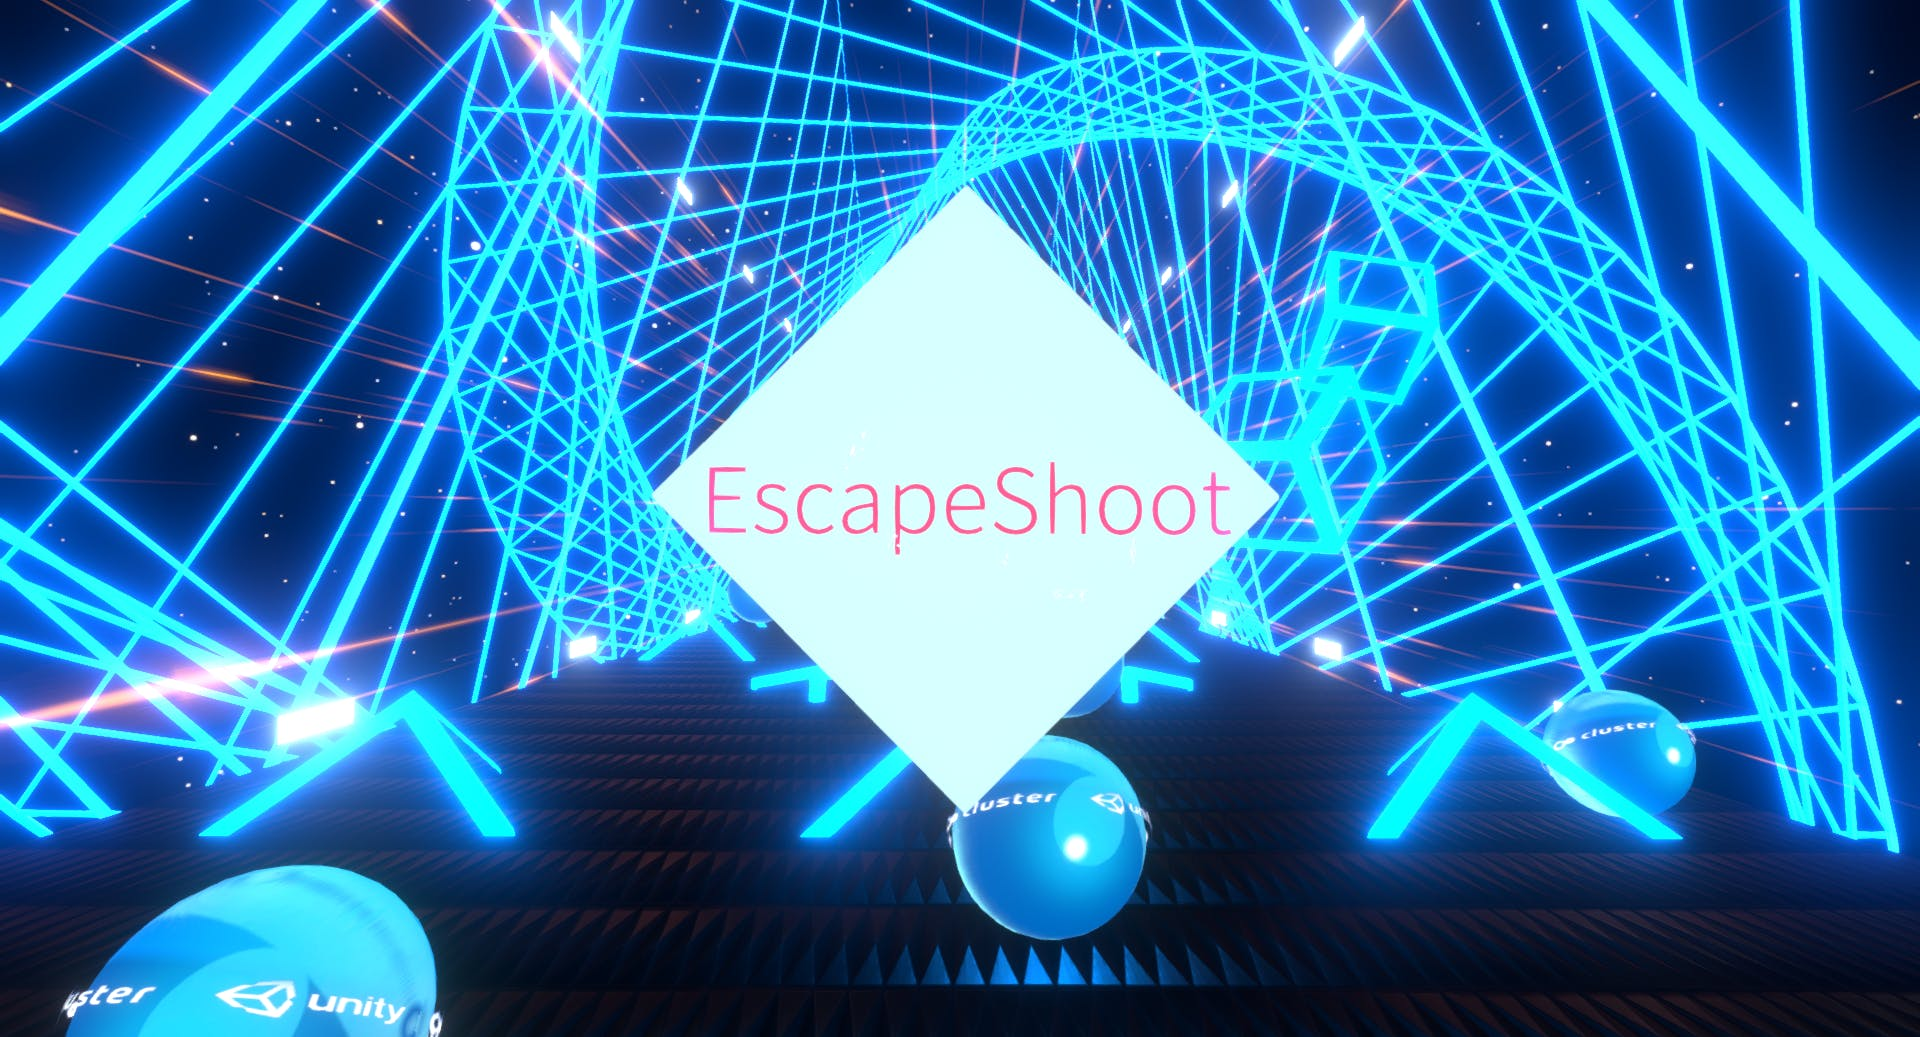 EscapeShoot